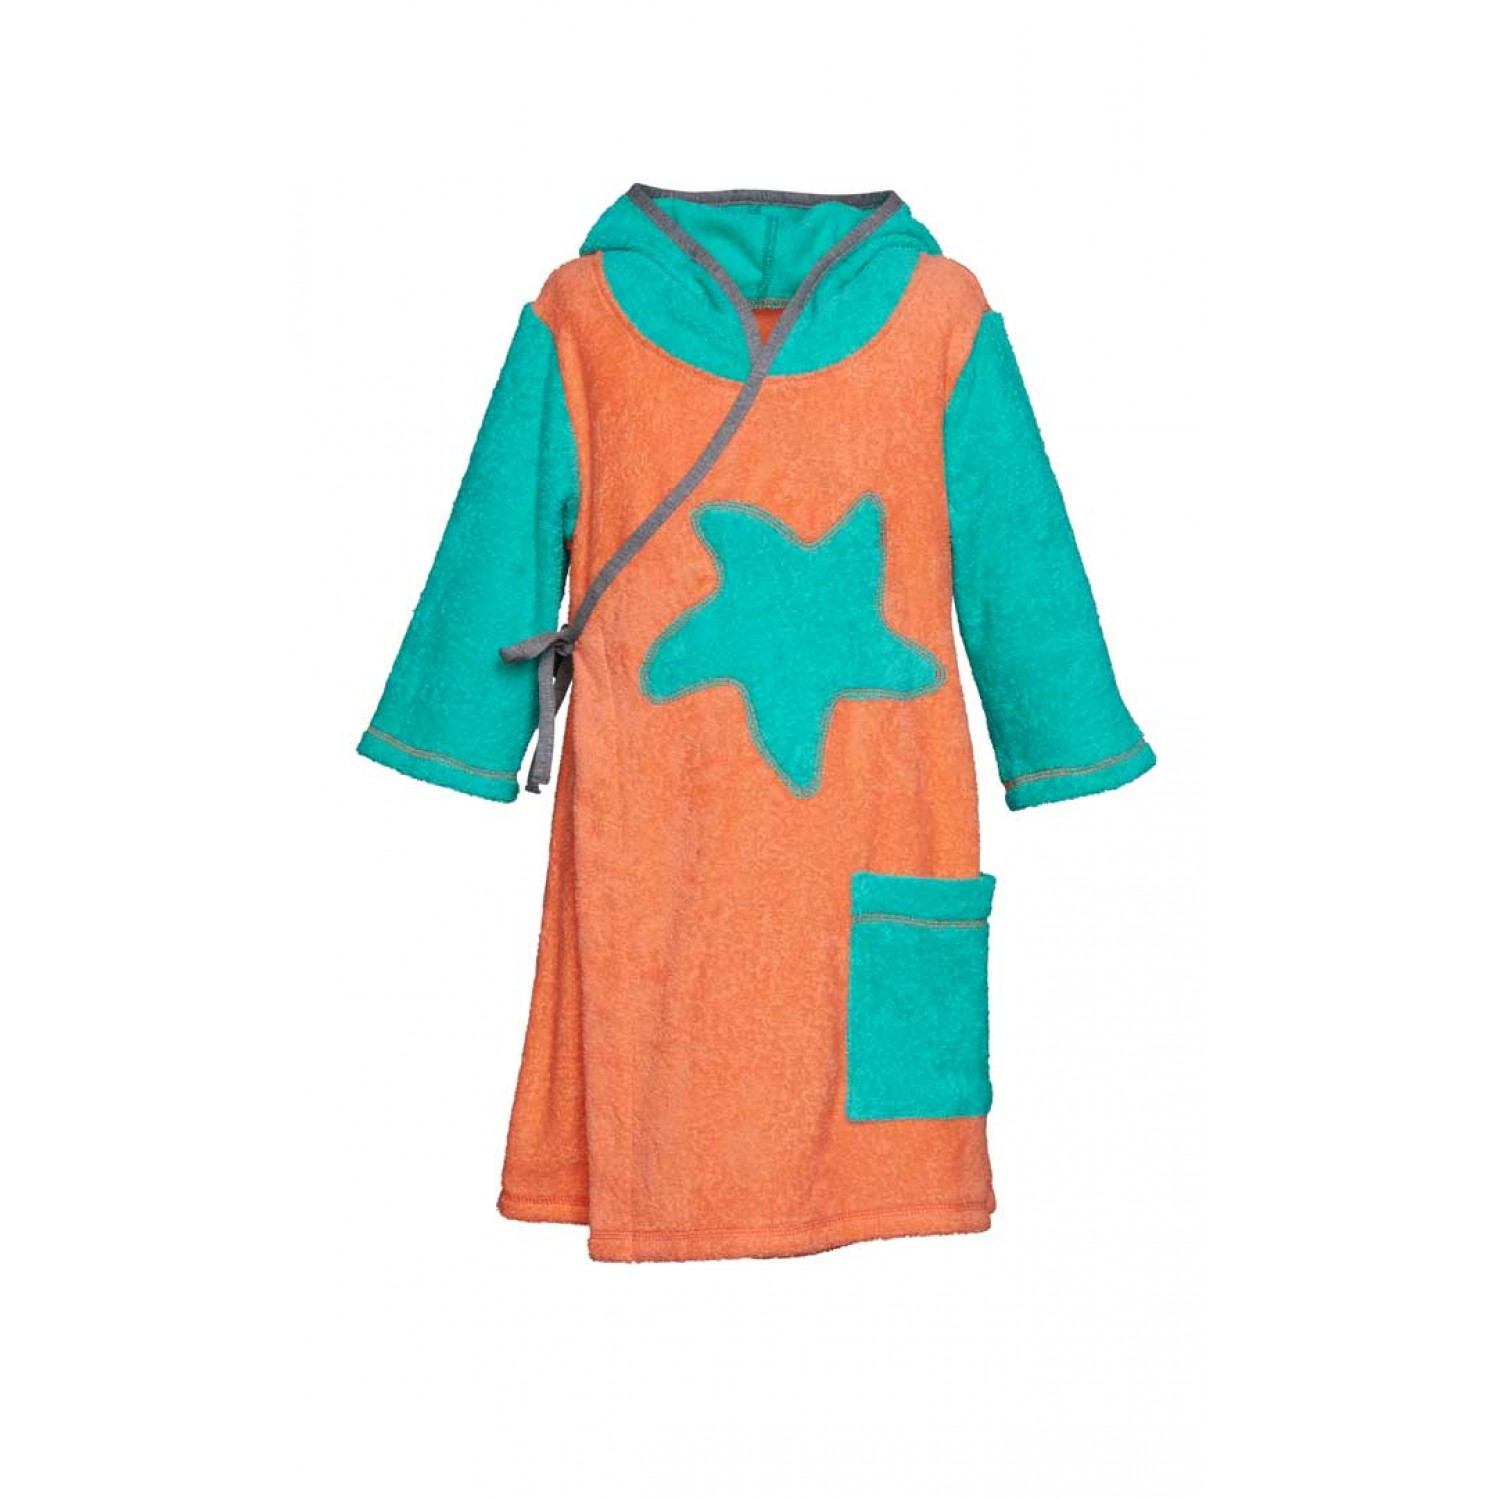 Girls' Bathrobe Coral/Green with Starfish, Organic Cotton